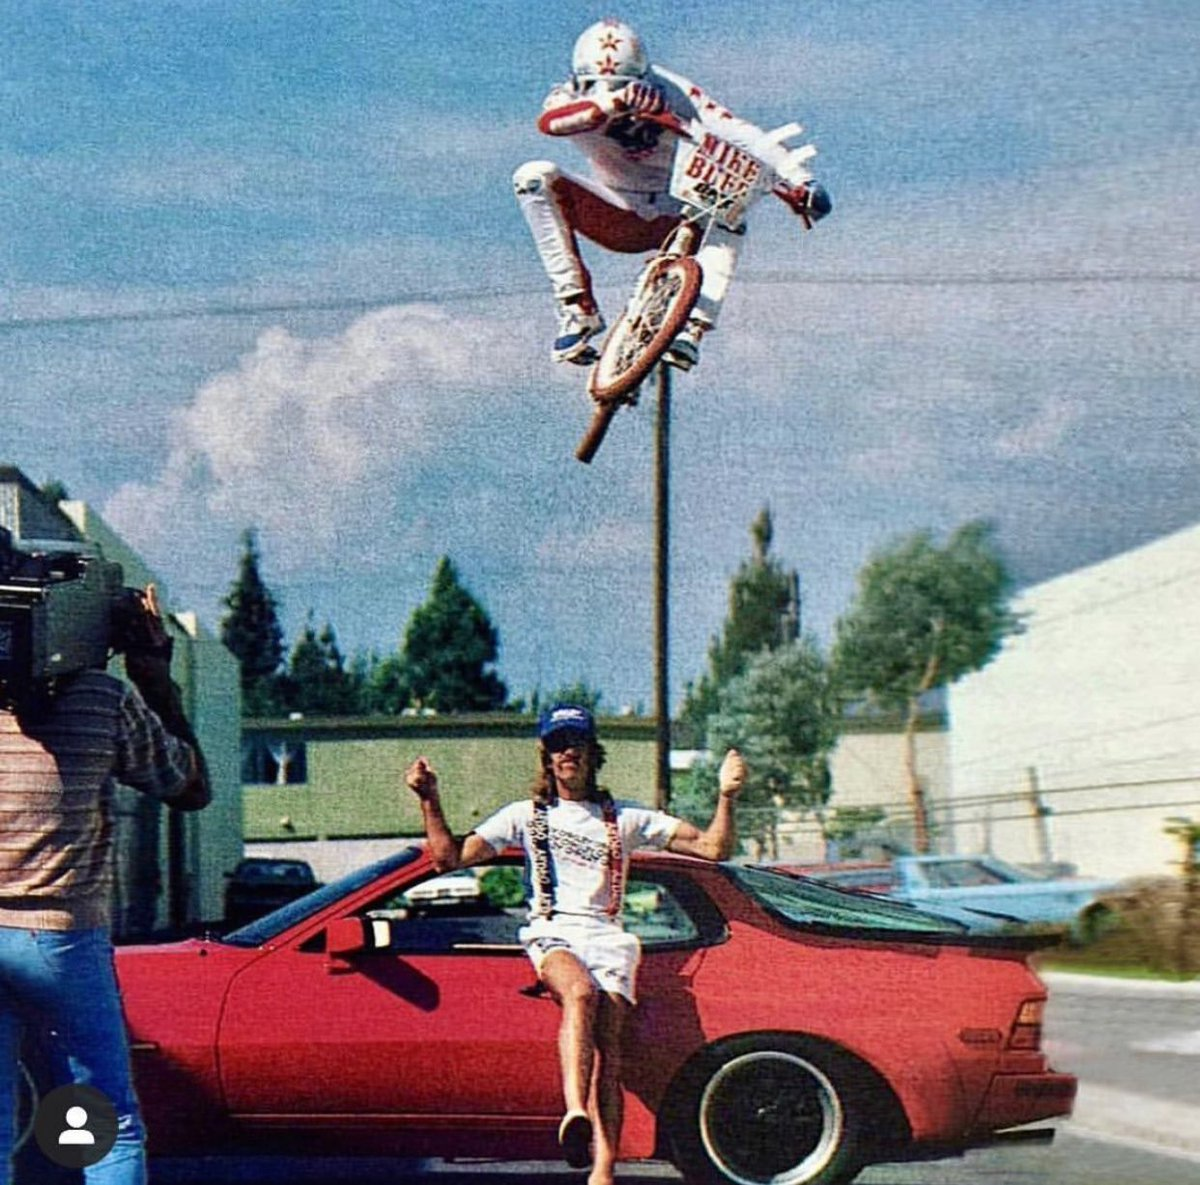 If this picture doesn't go down in history as one of THEE raddest BMX photos of all time, we don't know what does! That's @mikebuff_ jumping over a #porsche & the Duke of Oakley, Dana Duke! TO FLAT! #80sbmx radness! #oldschoolbmx #bmxfreestyle #bmxlegend #bmx #bmxstreet #seracingpic.twitter.com/YzrdtSRsoa